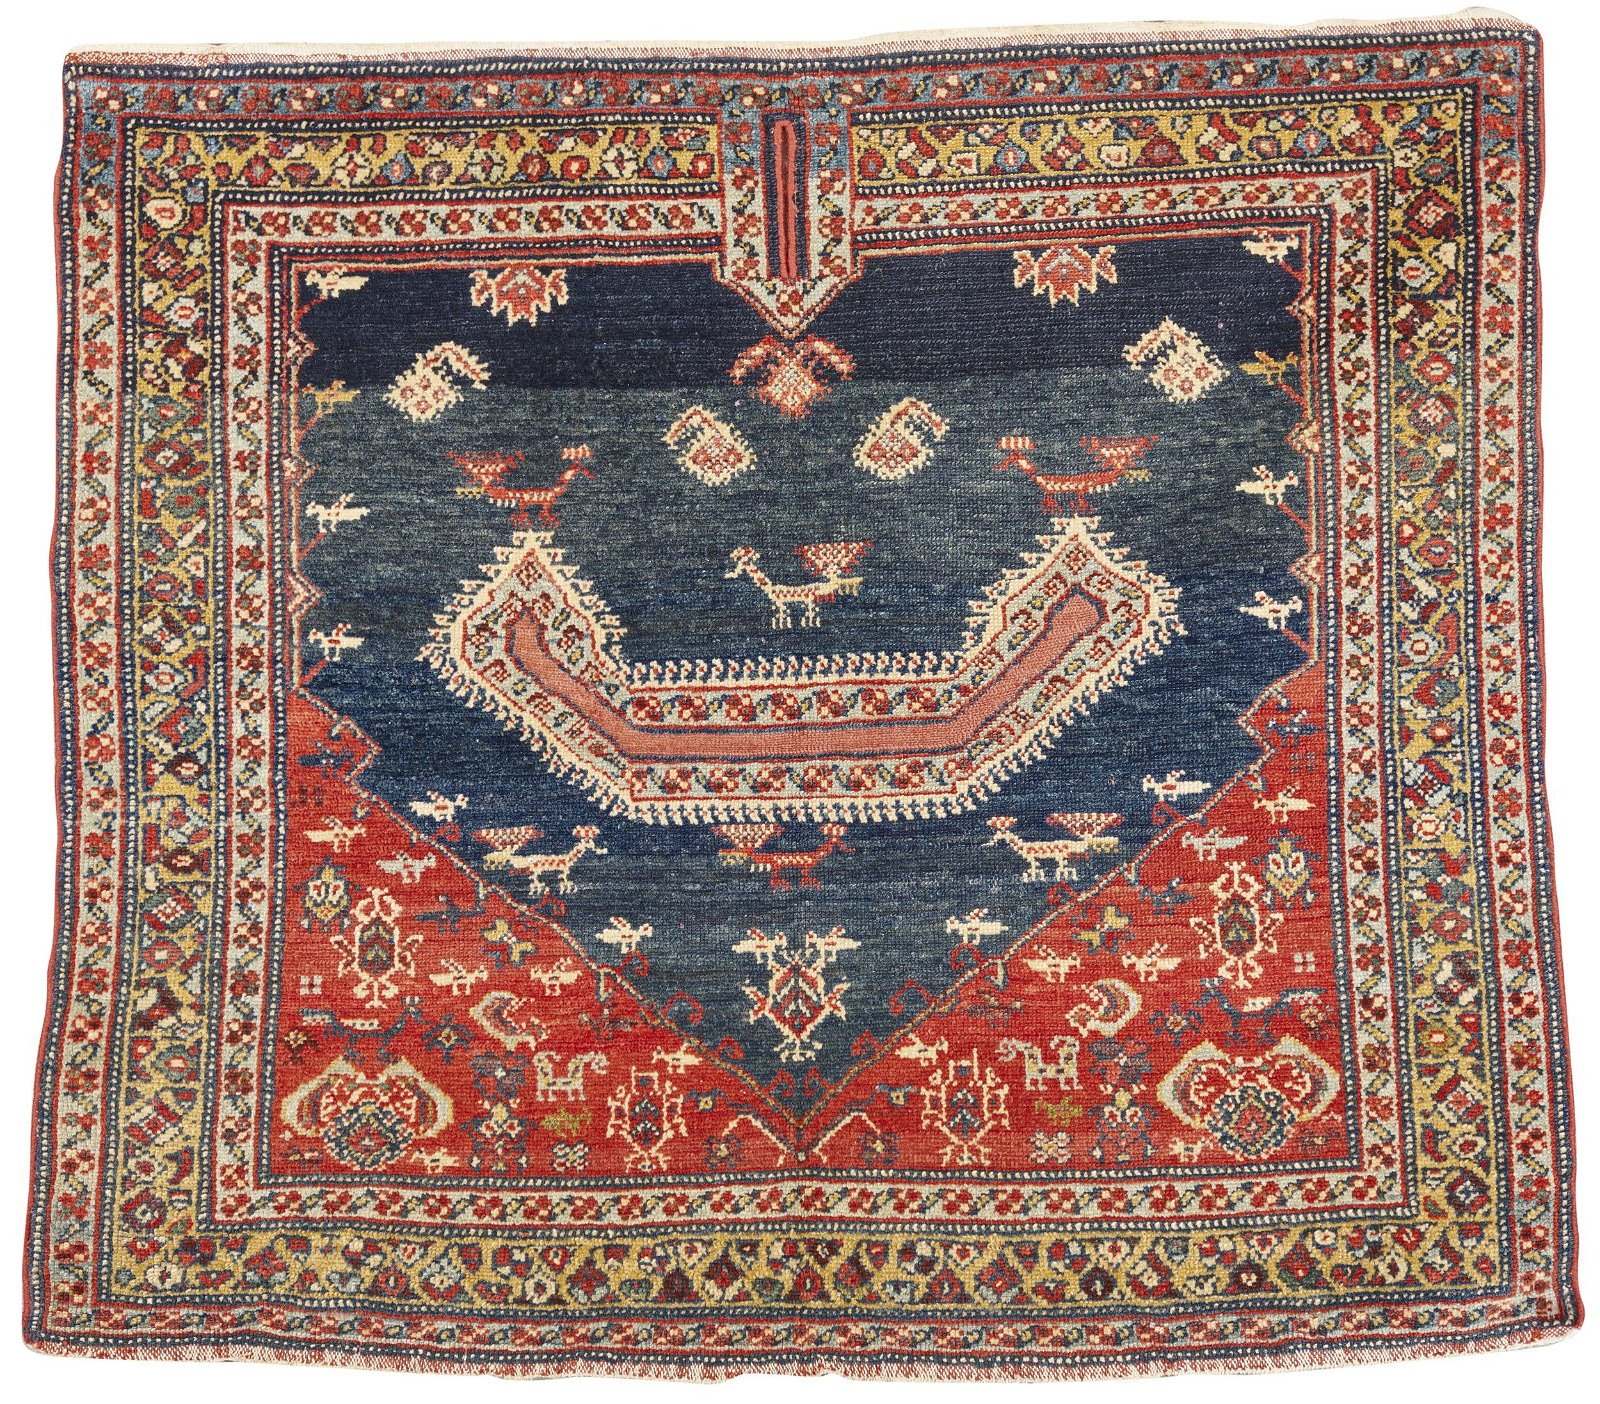 Persian Saddle Rug, ca. 1900; 3 ft. x 3 ft. 6 in.